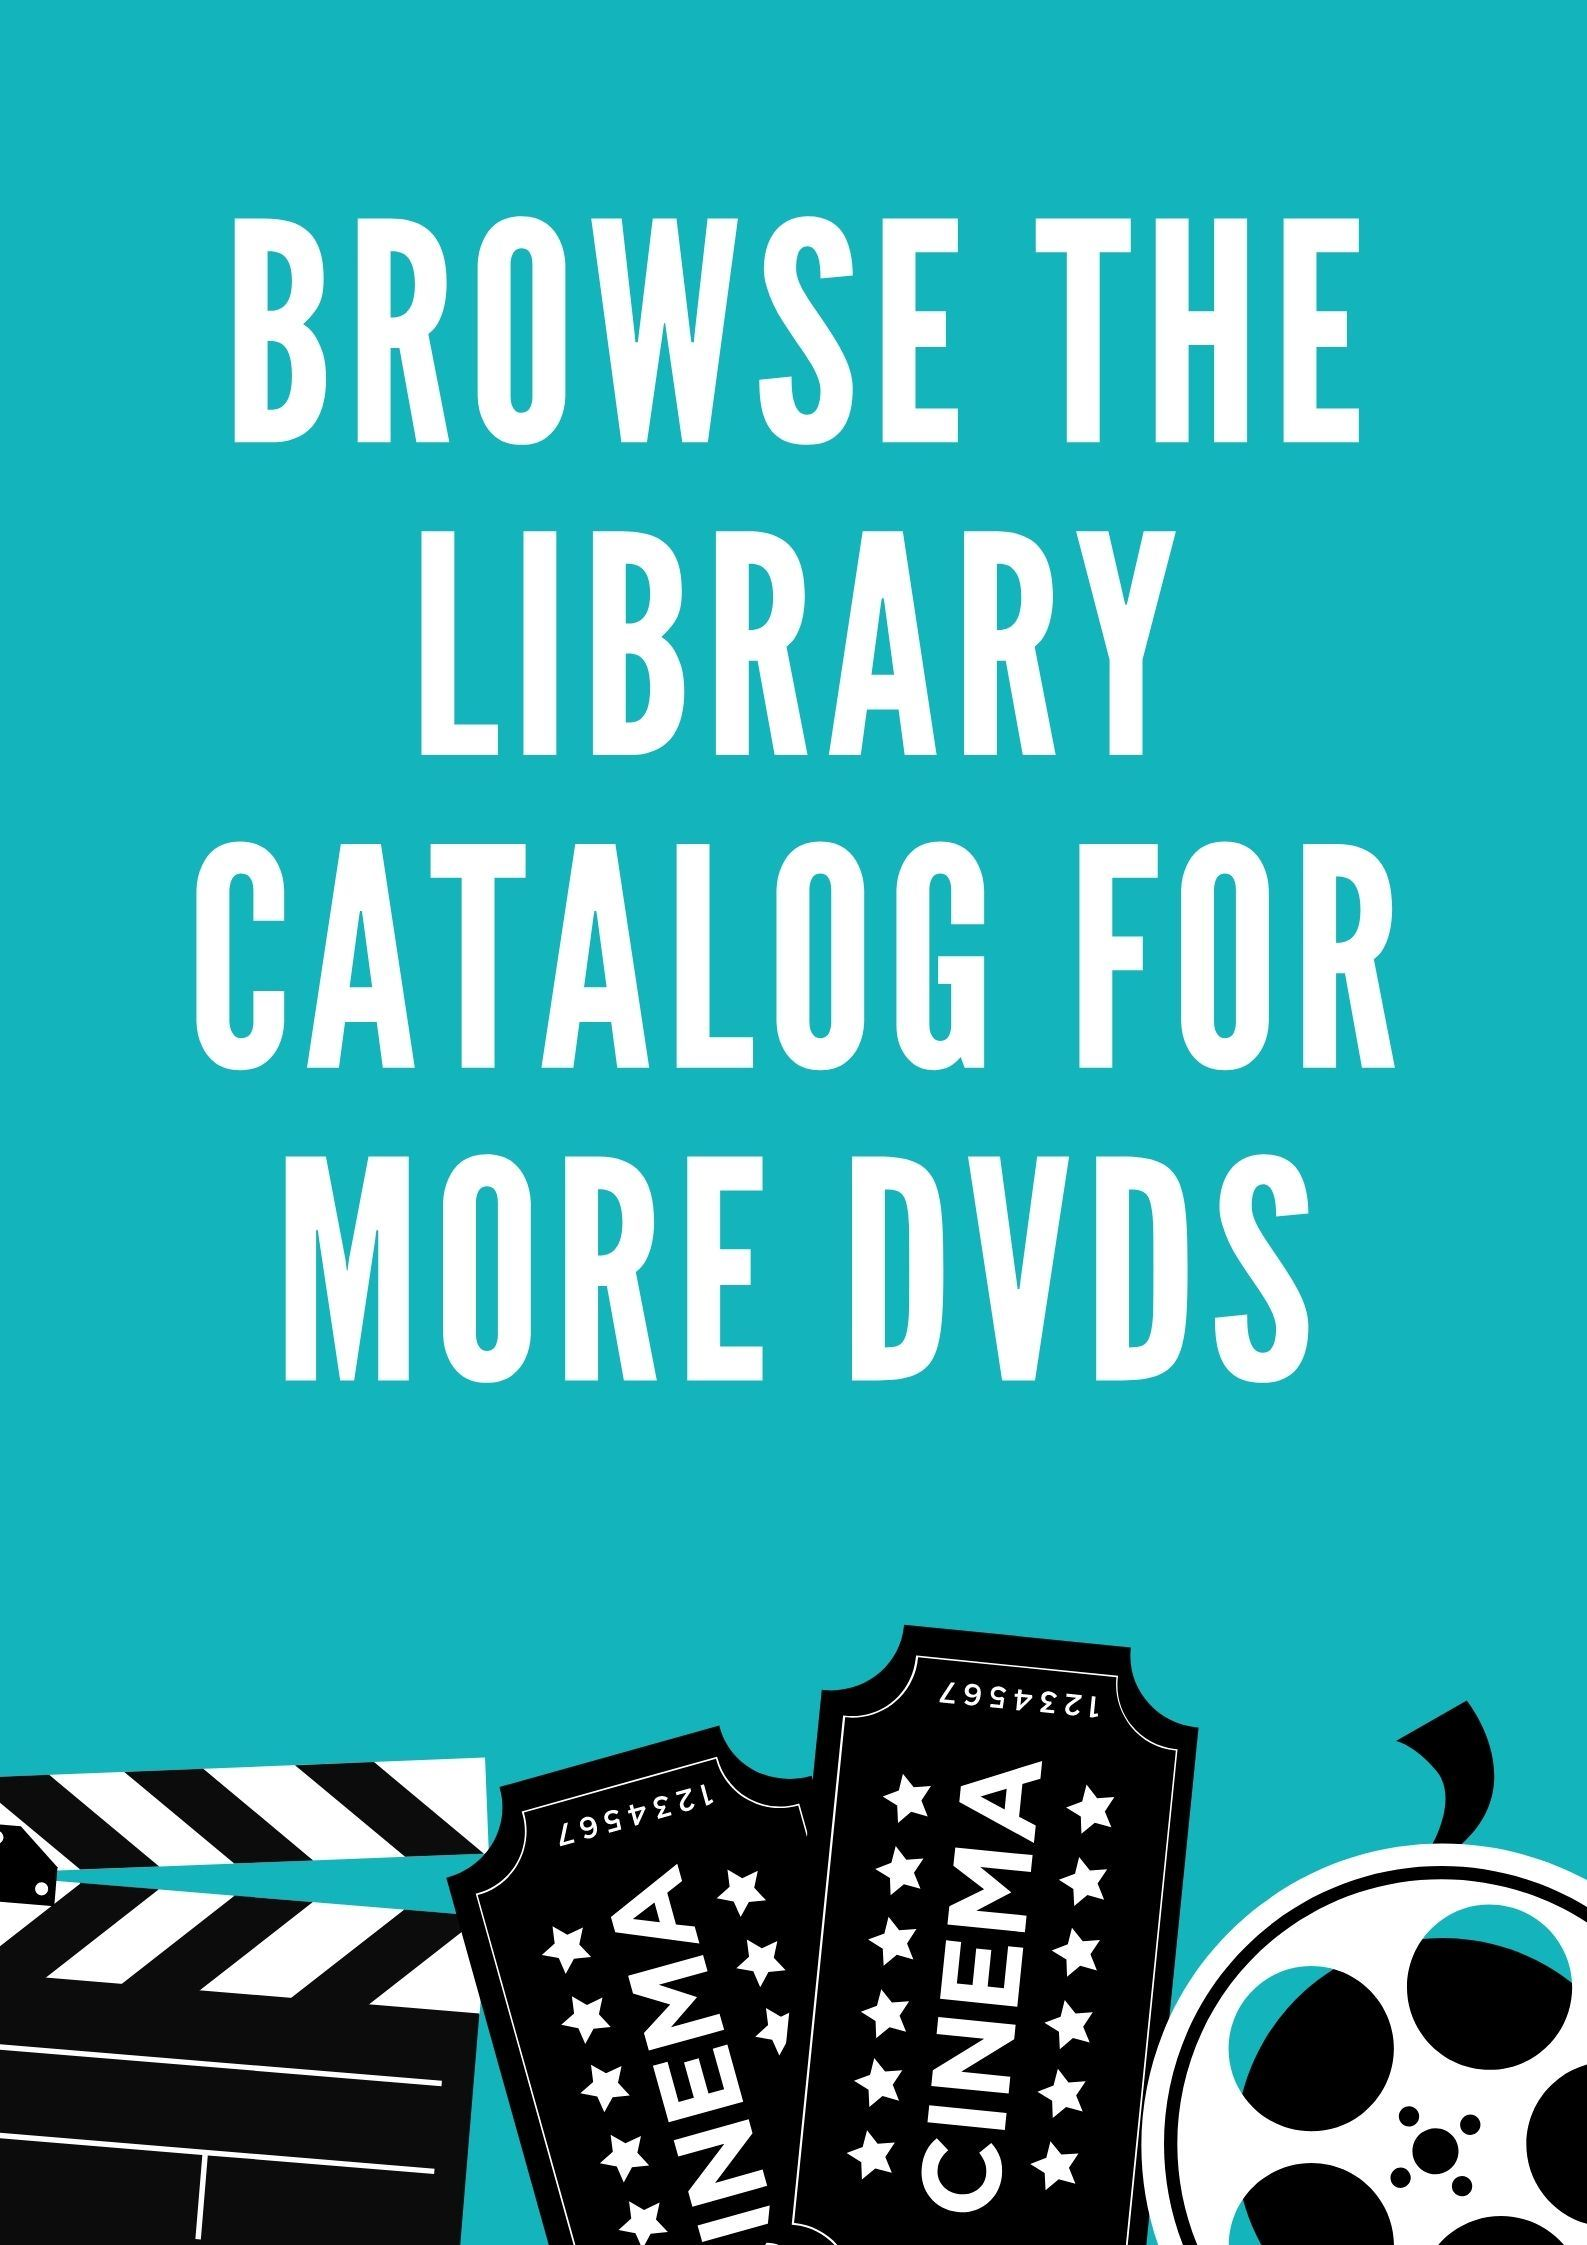 Browse for More DVDs